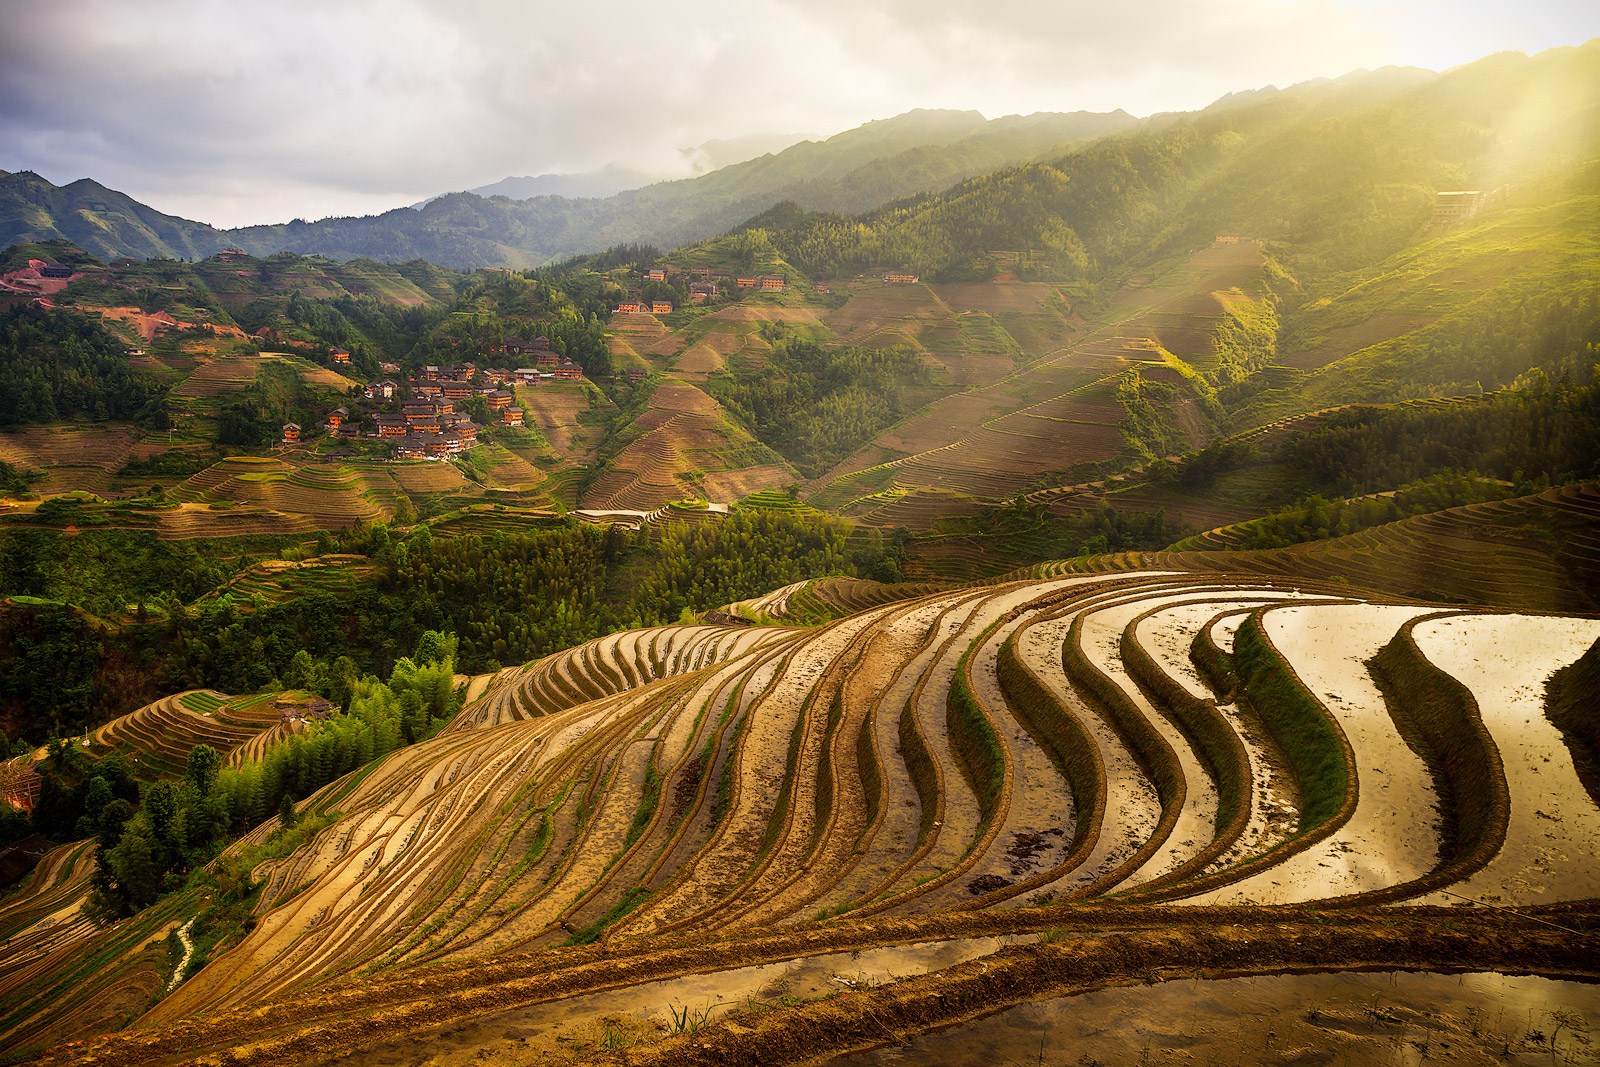 3,asia,china,gold,green,hill,horizontal,longji,longji rice terraces,longji viewpoint 3,longsheng,mountain,planting season,rice terrace,terrace,three,v, photo